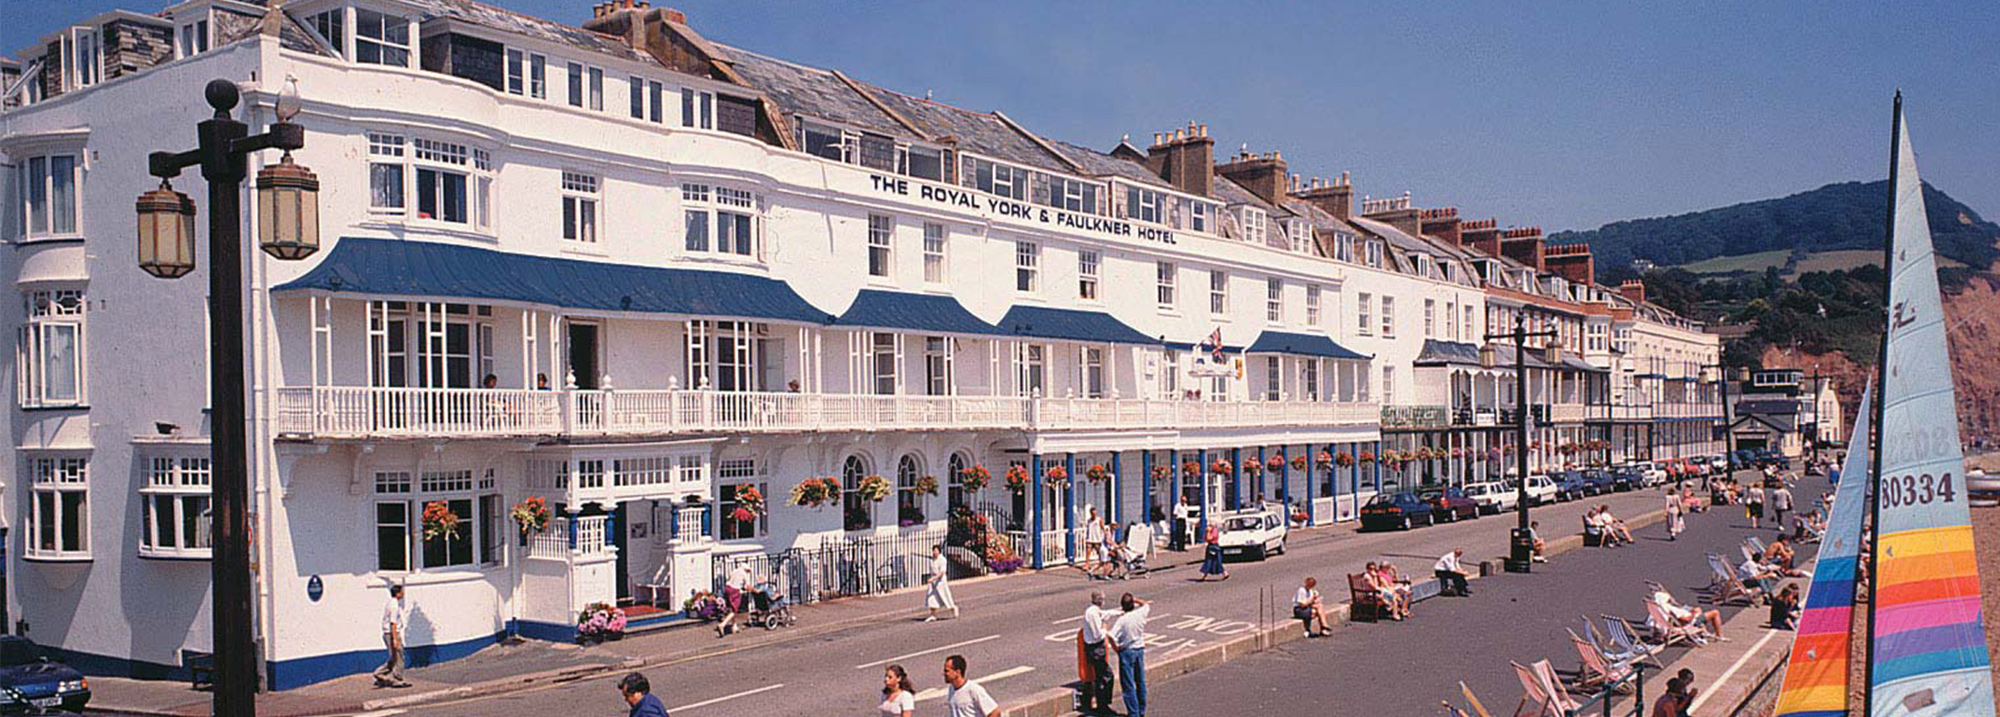 The Royal York & Faulkner Hotel, Sidmouth